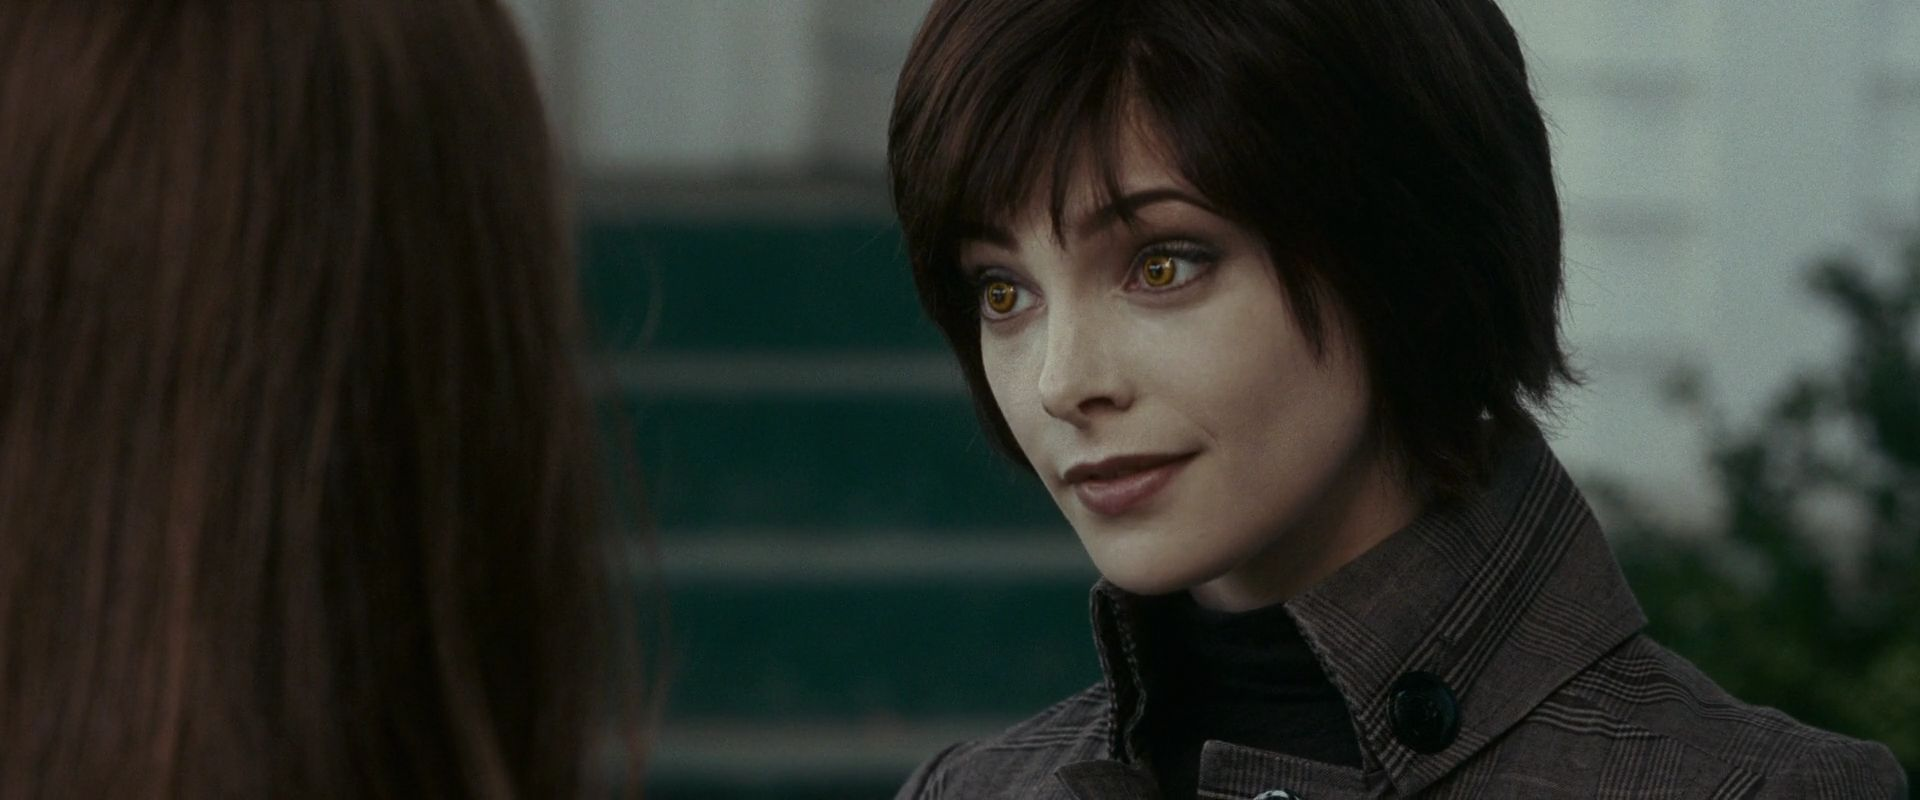 Alice Cullen Hair in Eclipse http://sengook.com/alice-cullen-eclipse.html